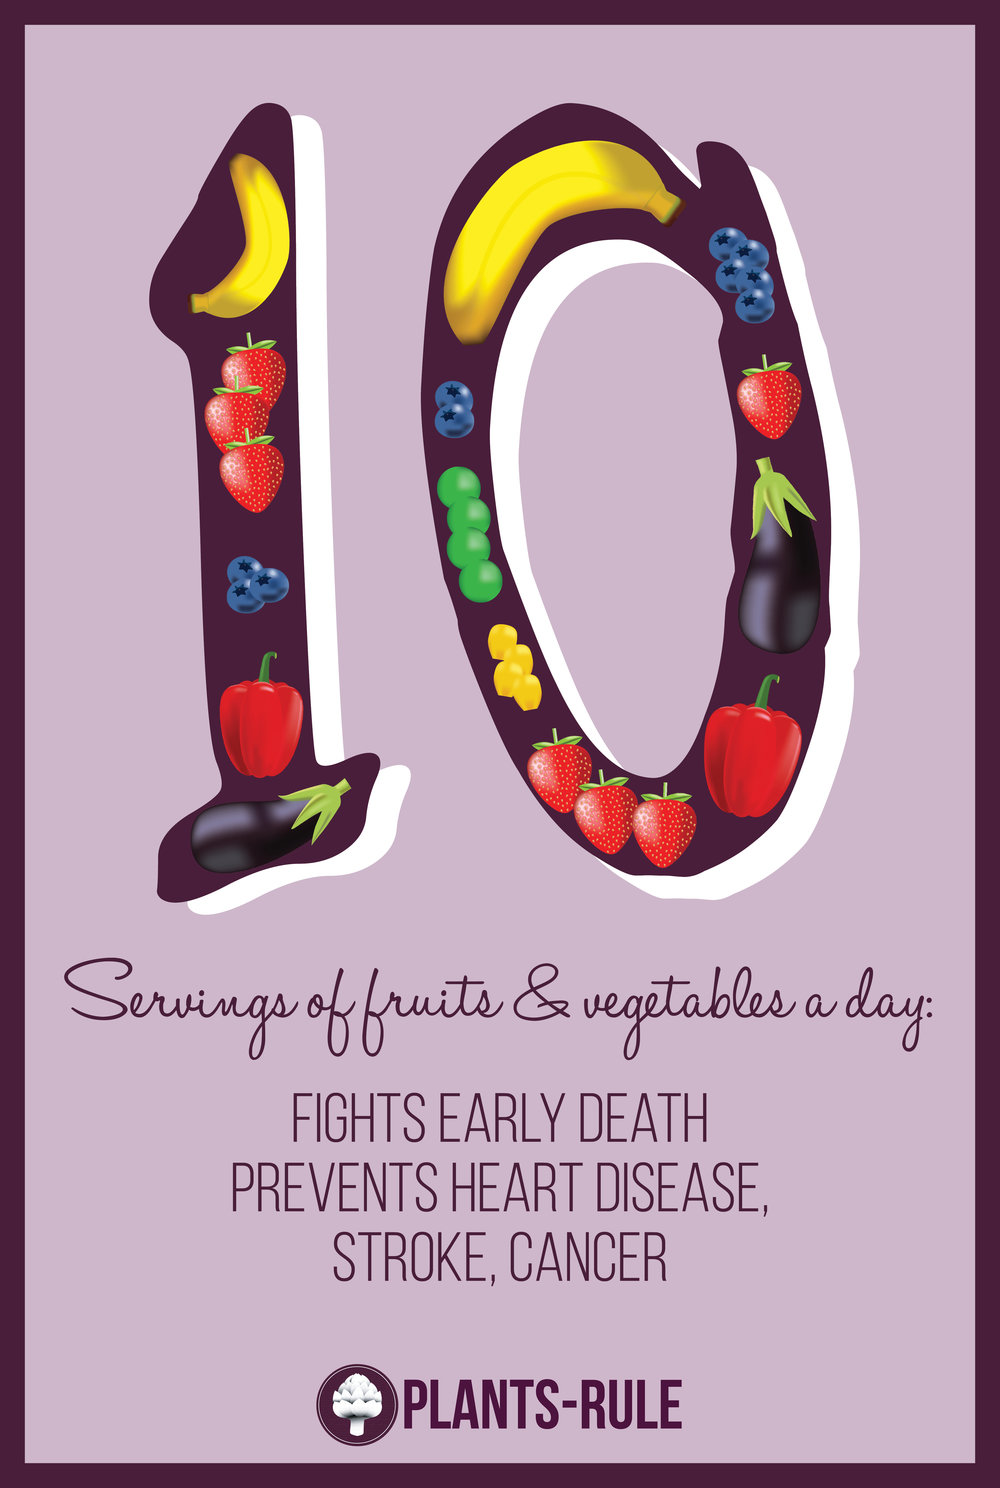 Plants-Rule Fight Early Death with 10 Servings of Fruits and Vegetables Daily Infographic Healthy Eating Image